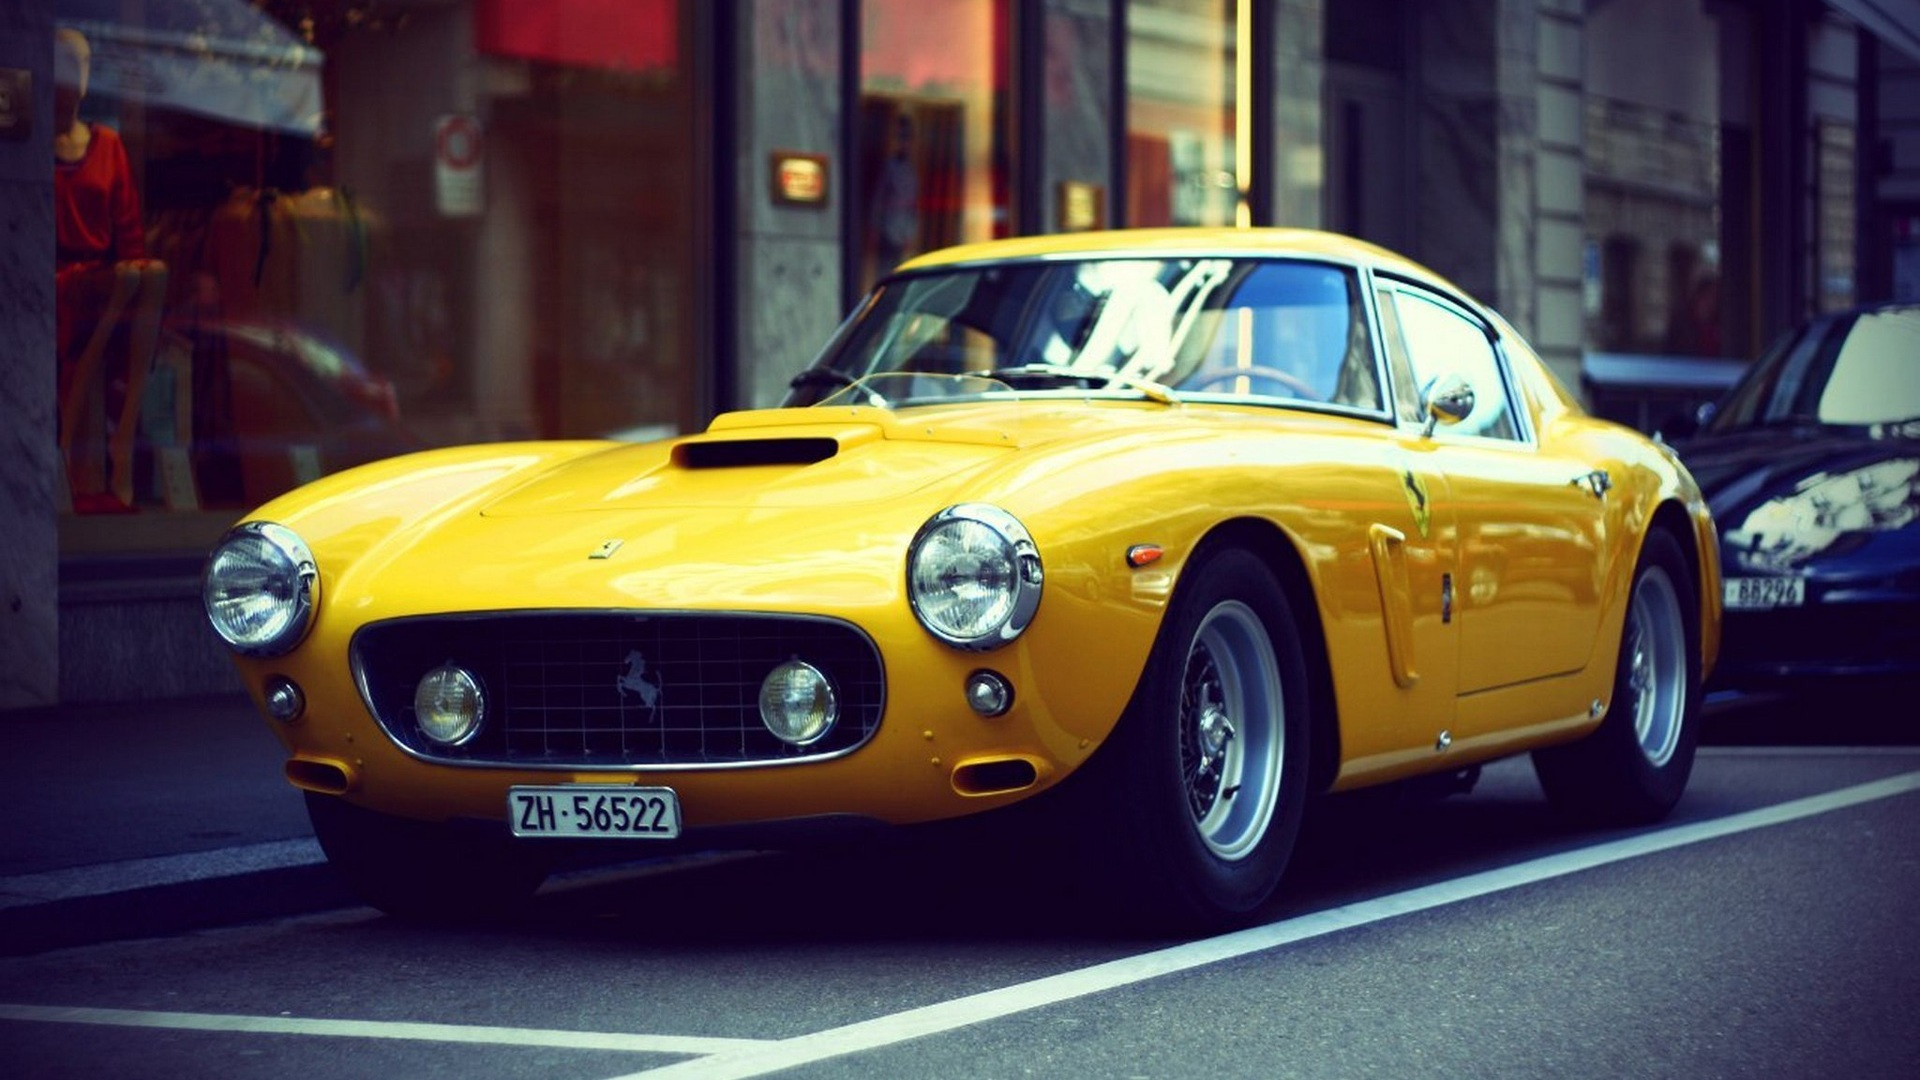 Cool Yellow Car Wallpaper X Px HDWallSourcecom - Cool yellow cars